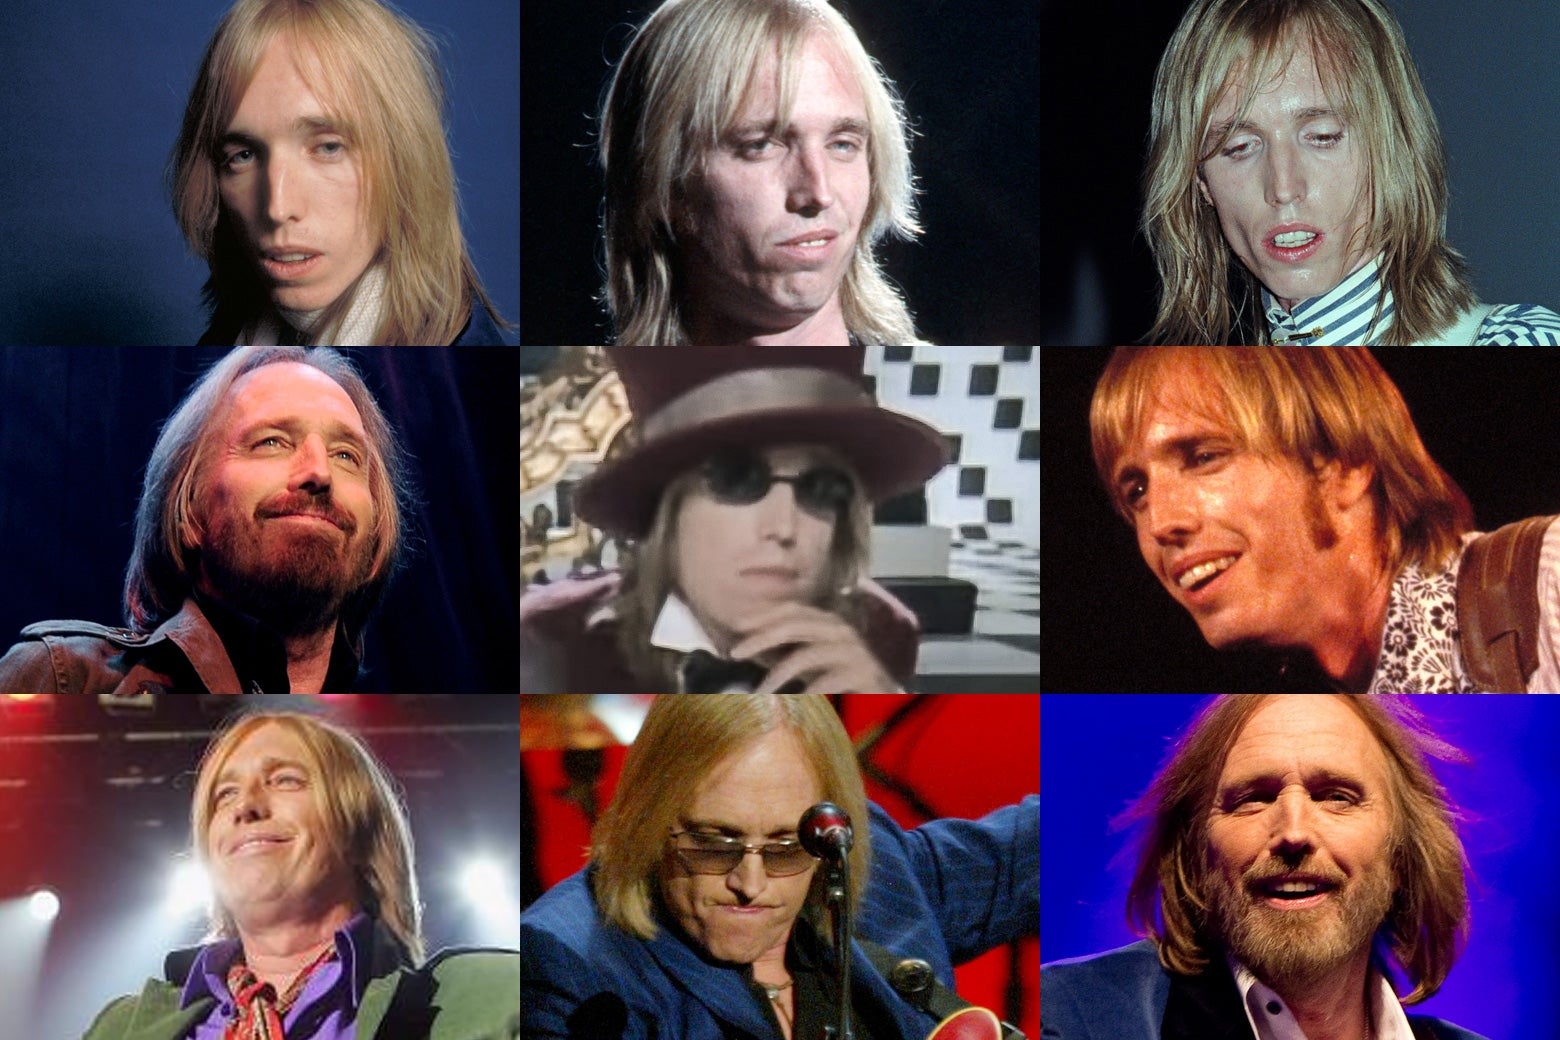 Tom Petty spanned classic, country, heartland rock, new wave, dance pop, and grunge over nearly 40 years.